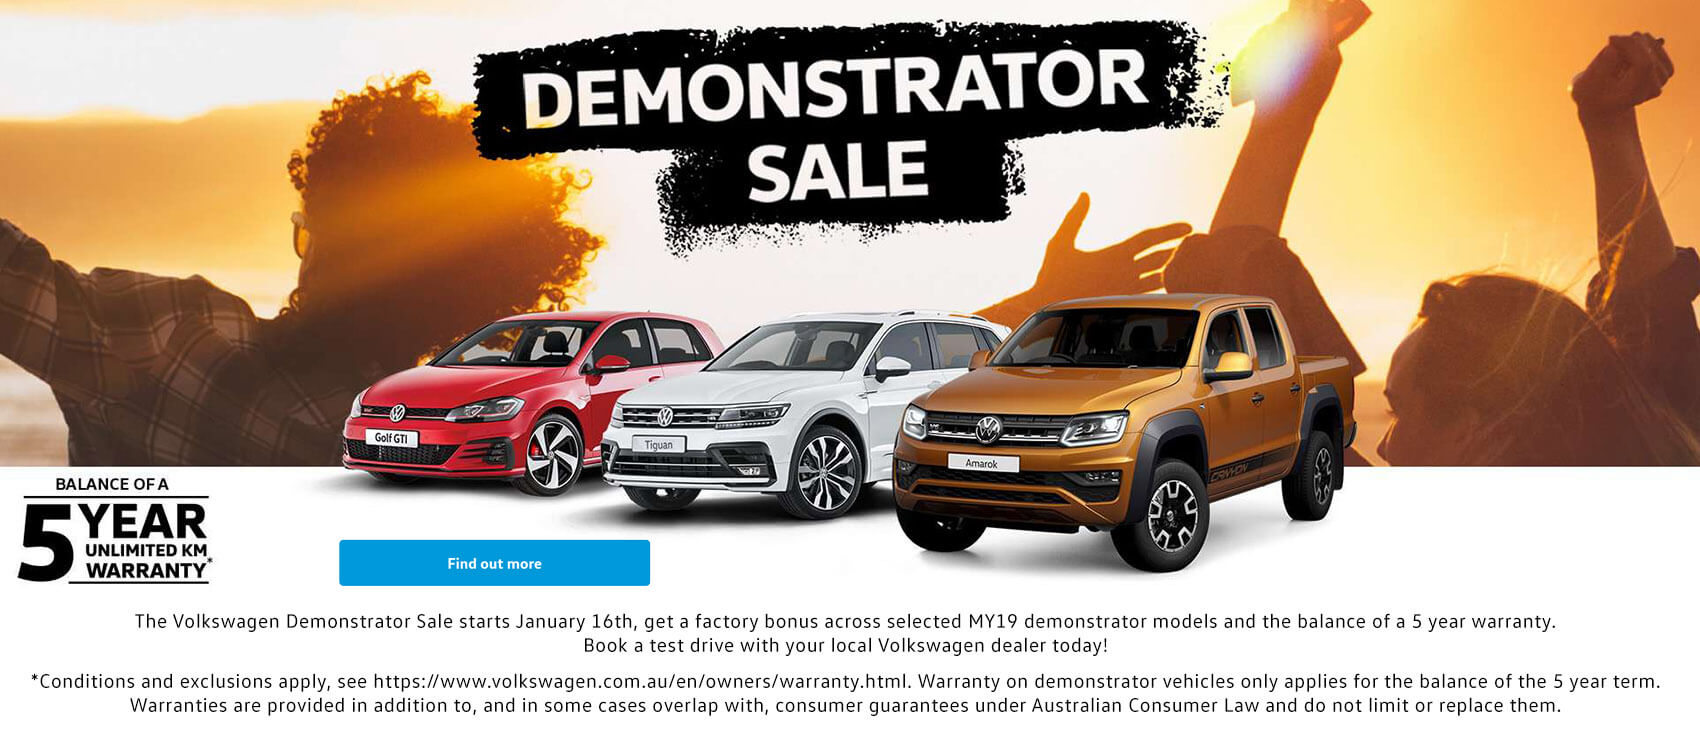 The Volkswagen Demonstrator Sale starts January 16th, get a factory bonus across selected MY19 demonstrator models and the balance of a 5 year warranty. Book a test drive with Northern Rivers Volkswagen